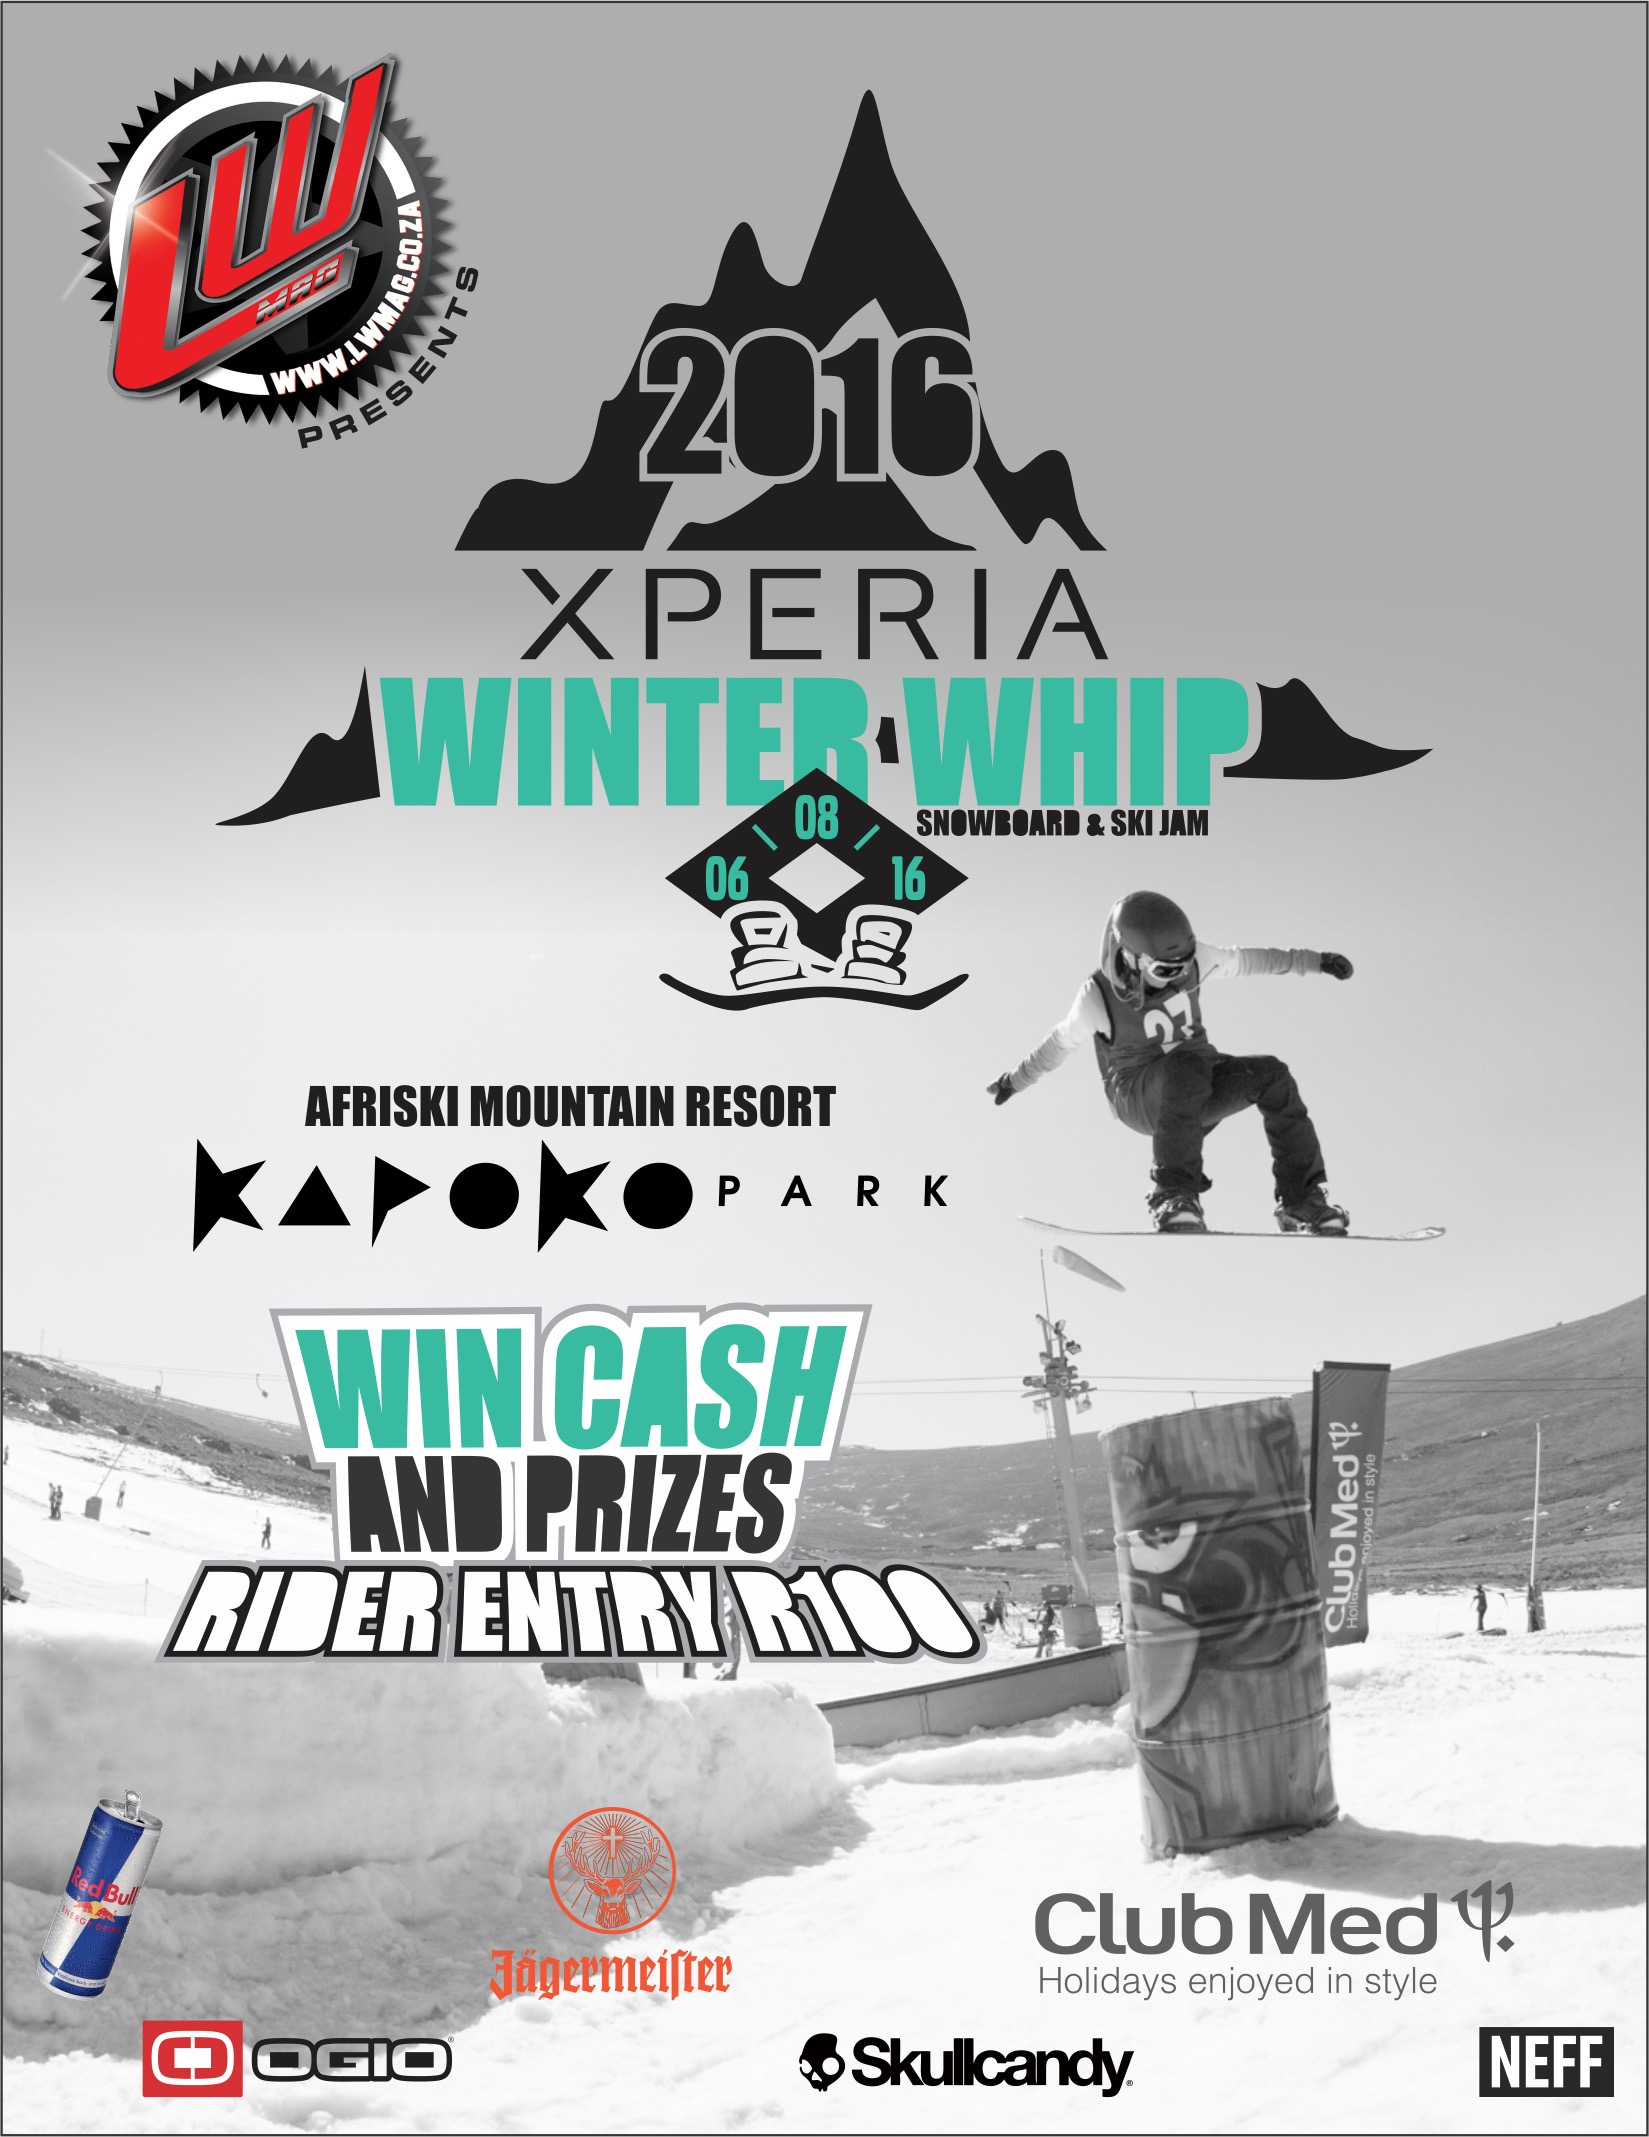 2016 Xperia Winter Whip Snowboarding and Skiing event announced